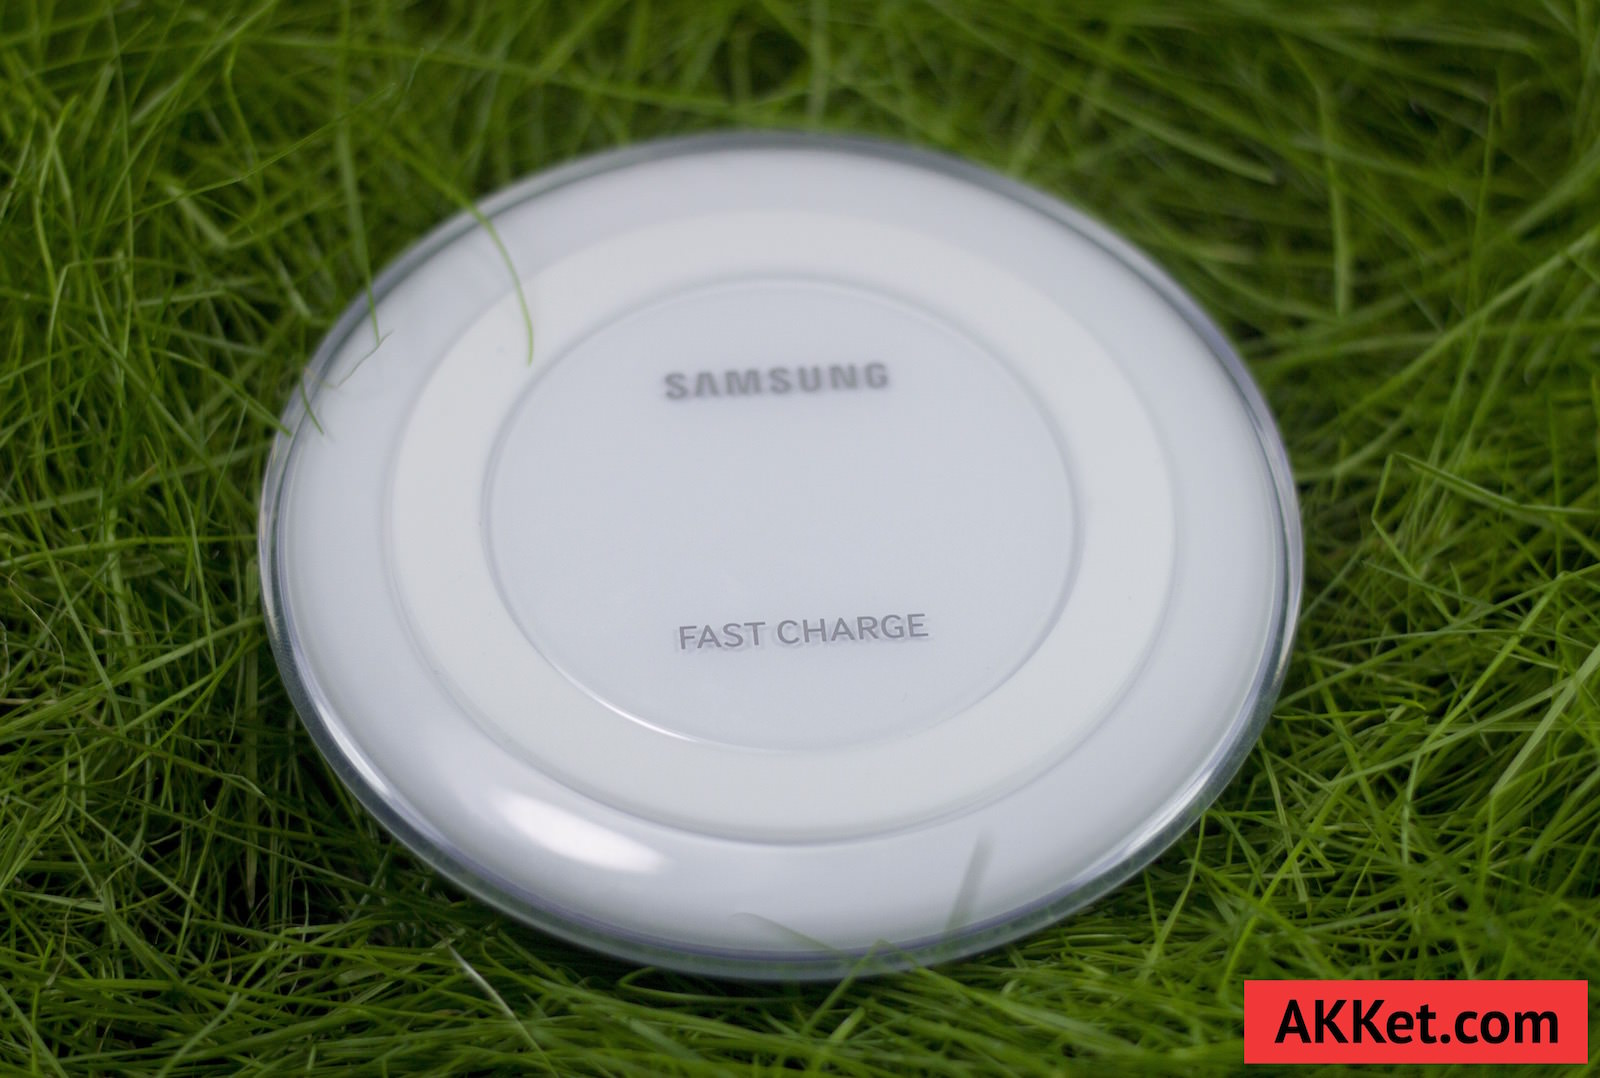 Fast Charge Wireless Charging Pad EP-PN920 5